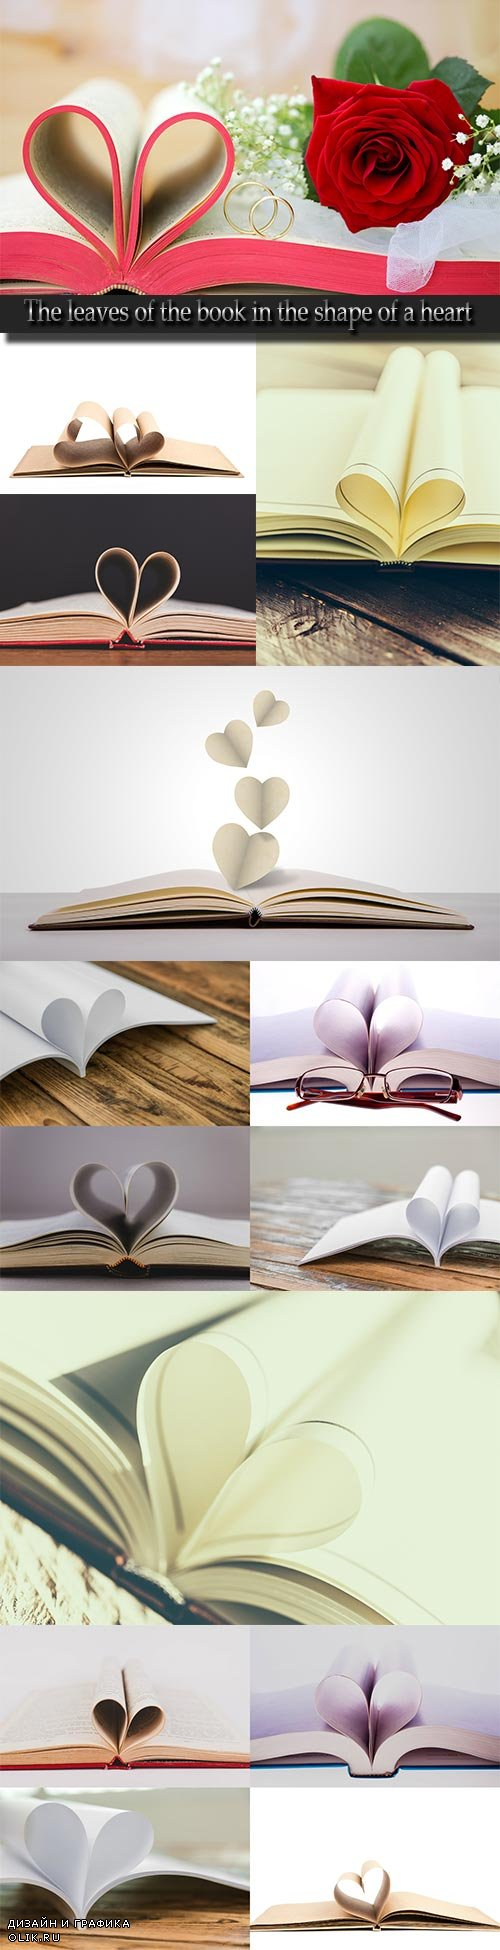 The leaves of the book in the shape of a heart